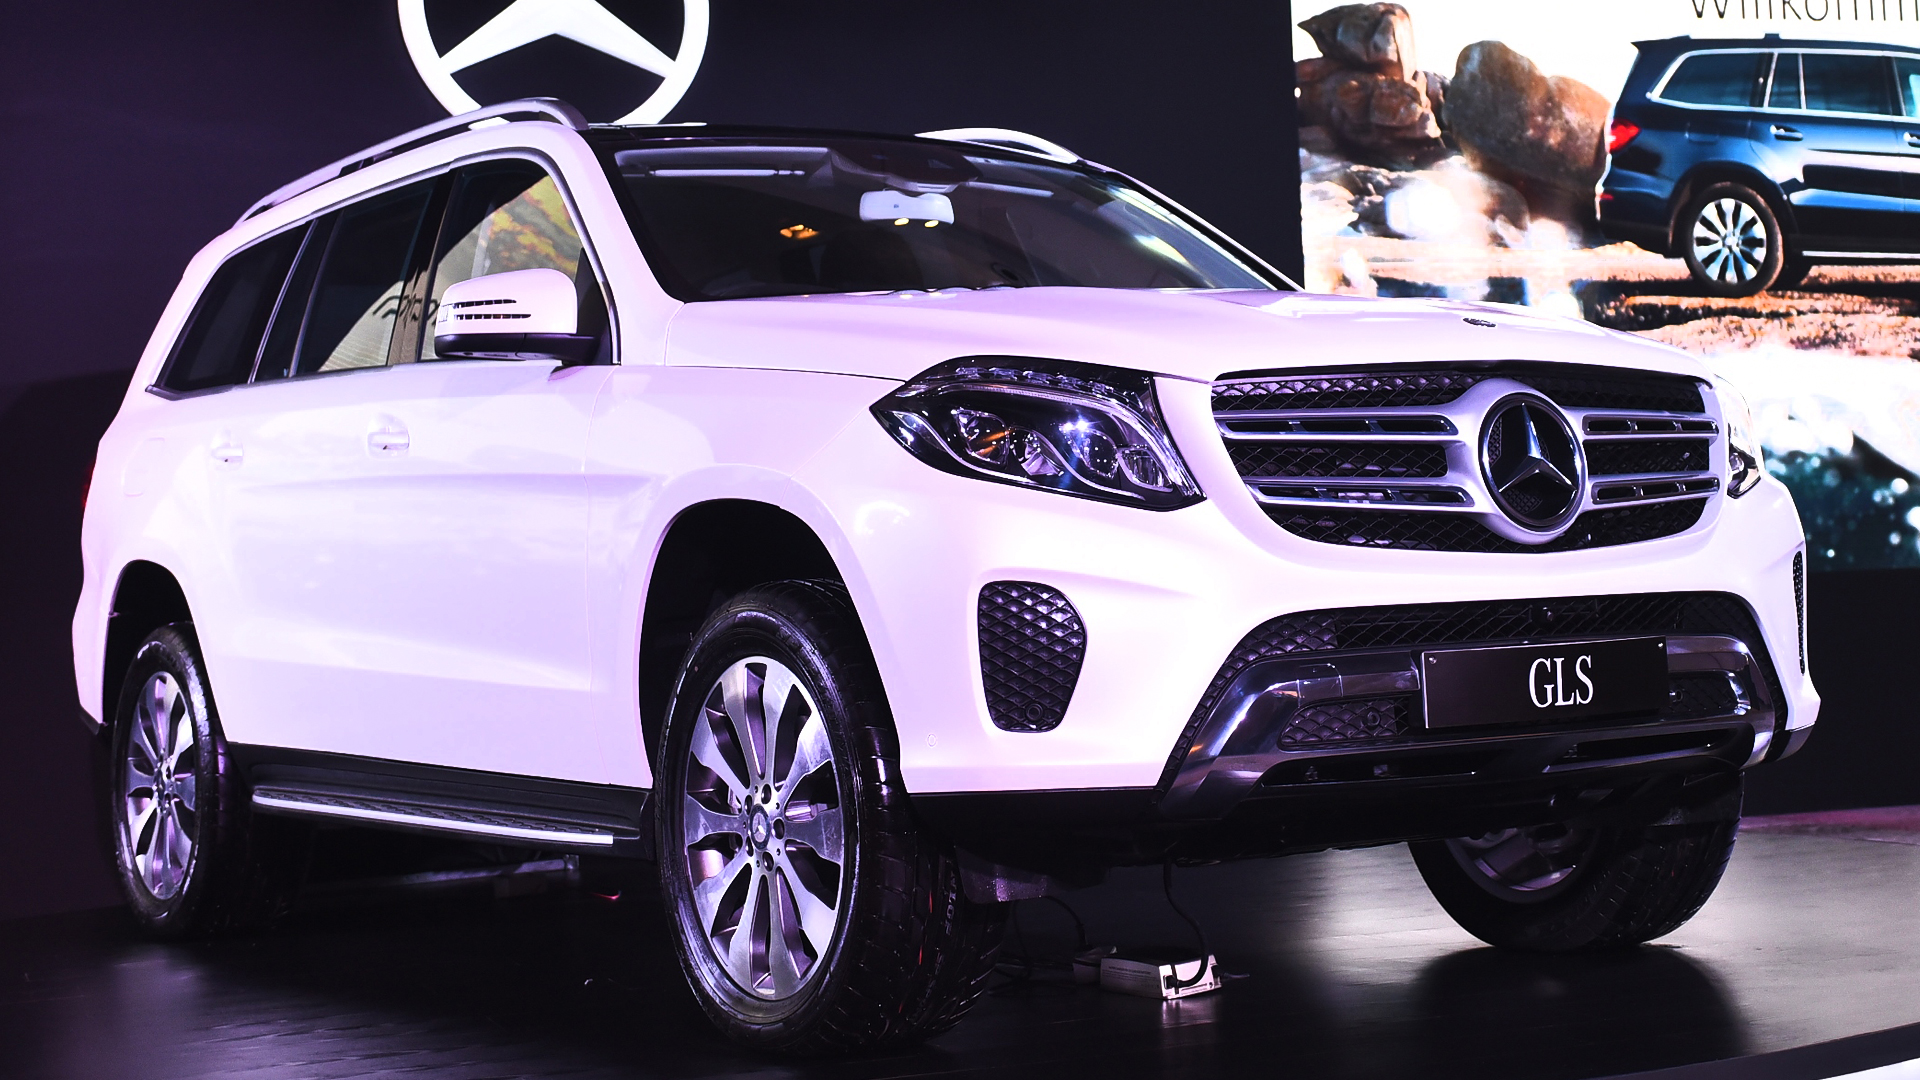 Mercedes Benz GLS 2016 350d Price Mileage Reviews Specification